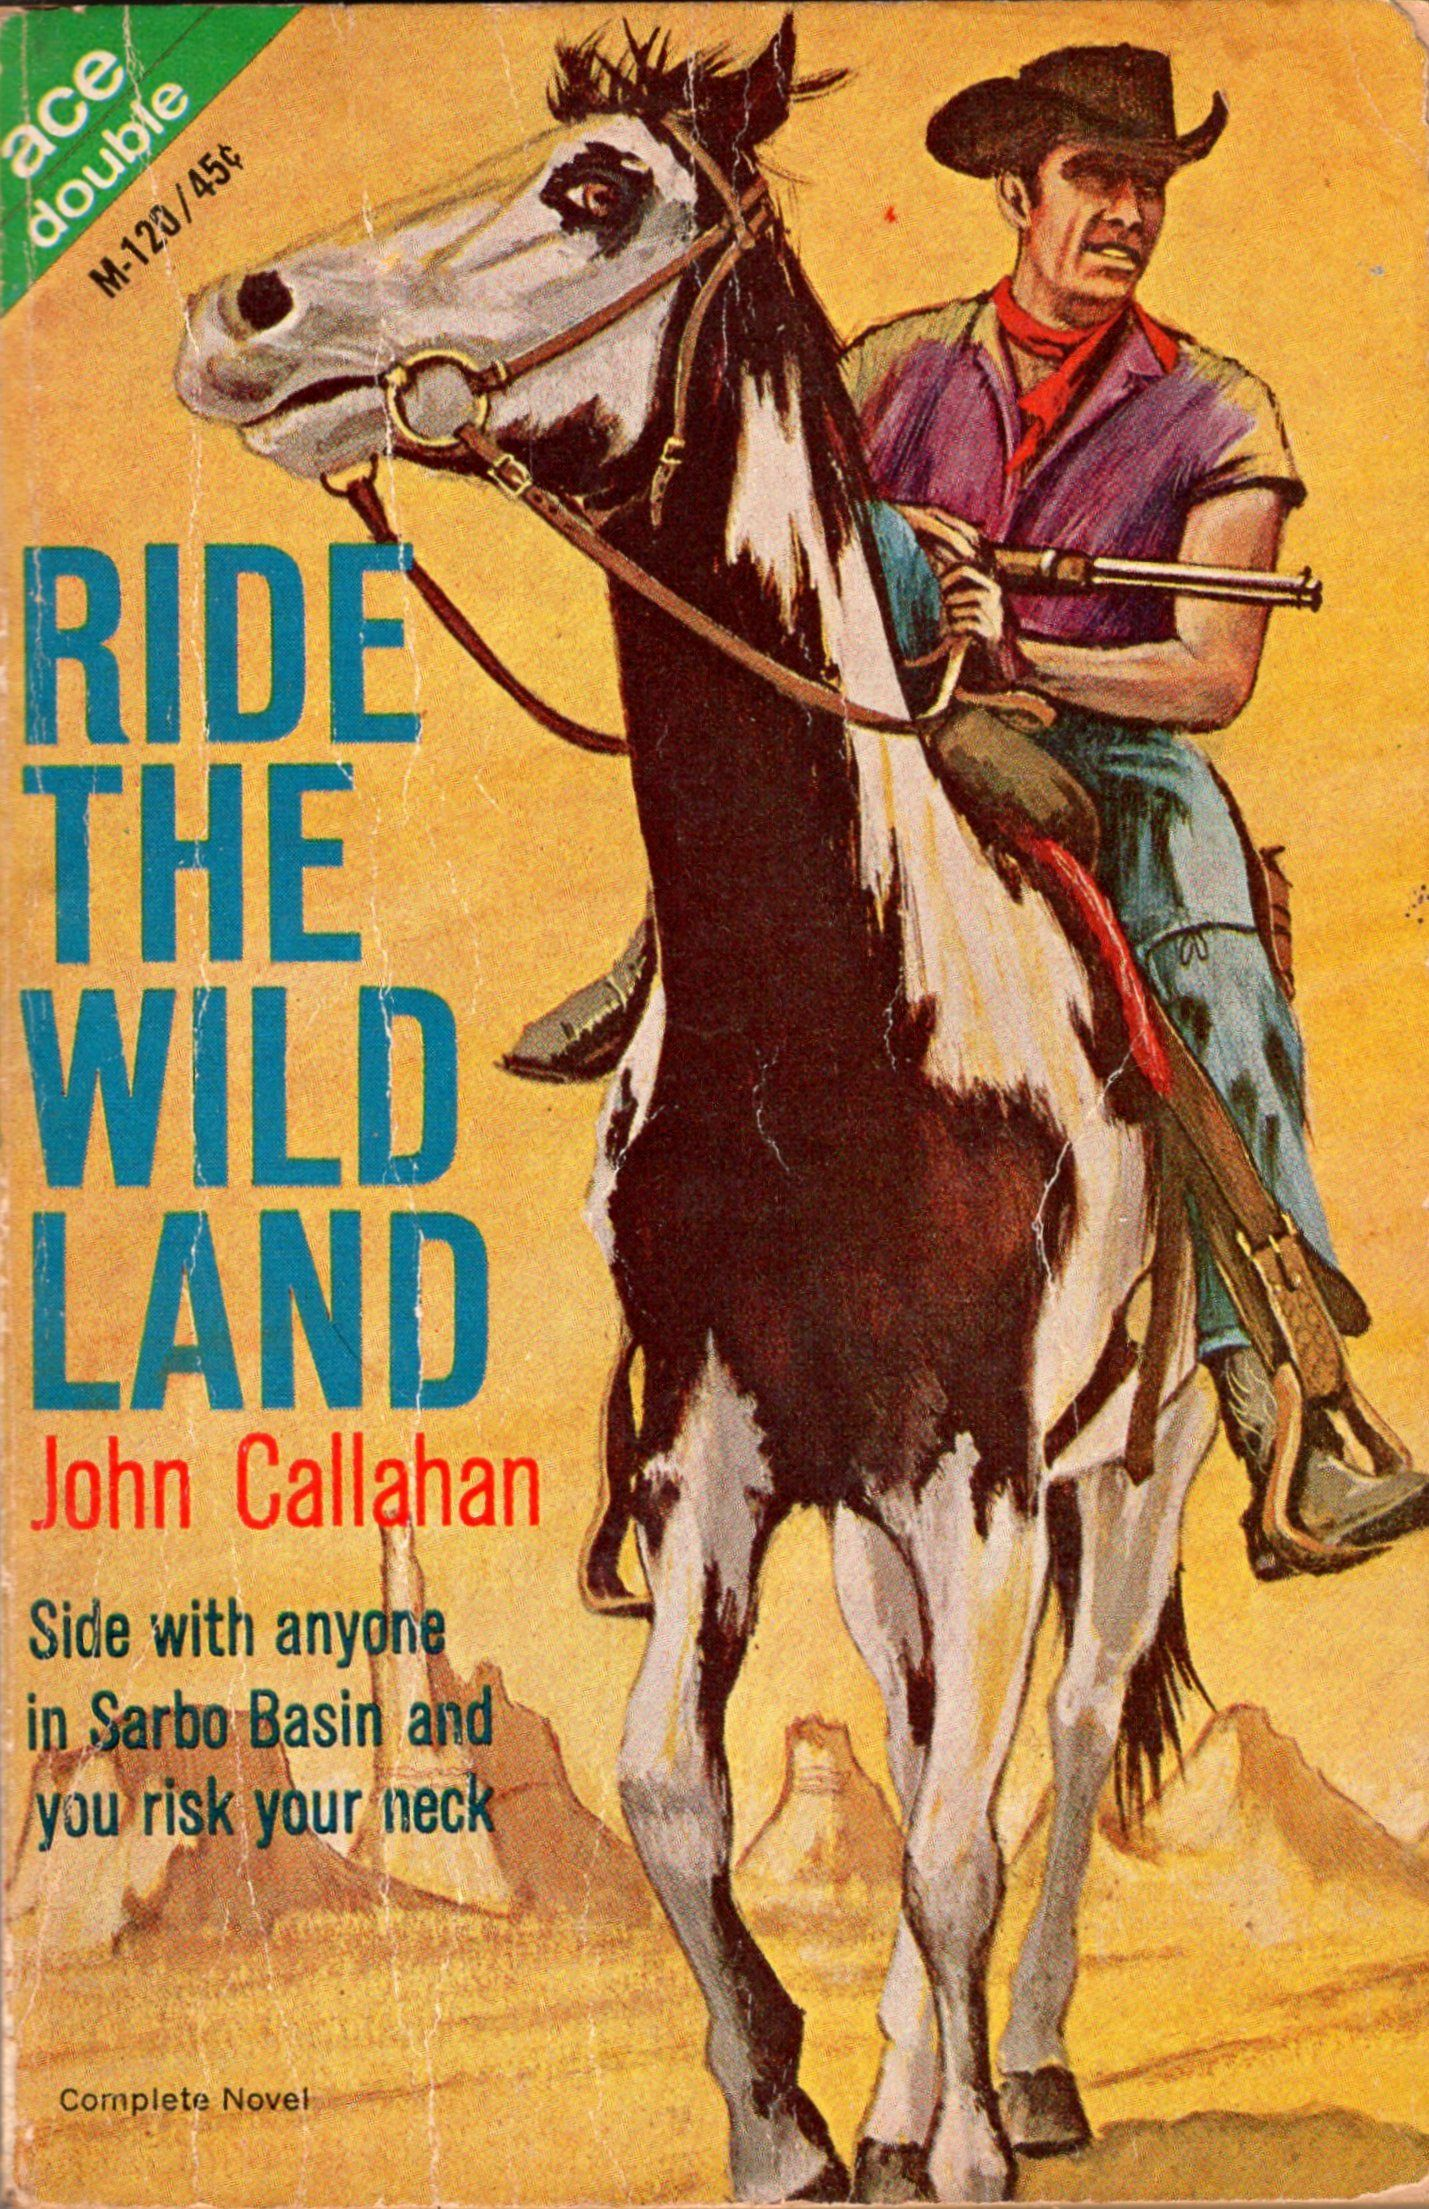 Ride the Wild Land by John Callahan Cover art, Art, Novels